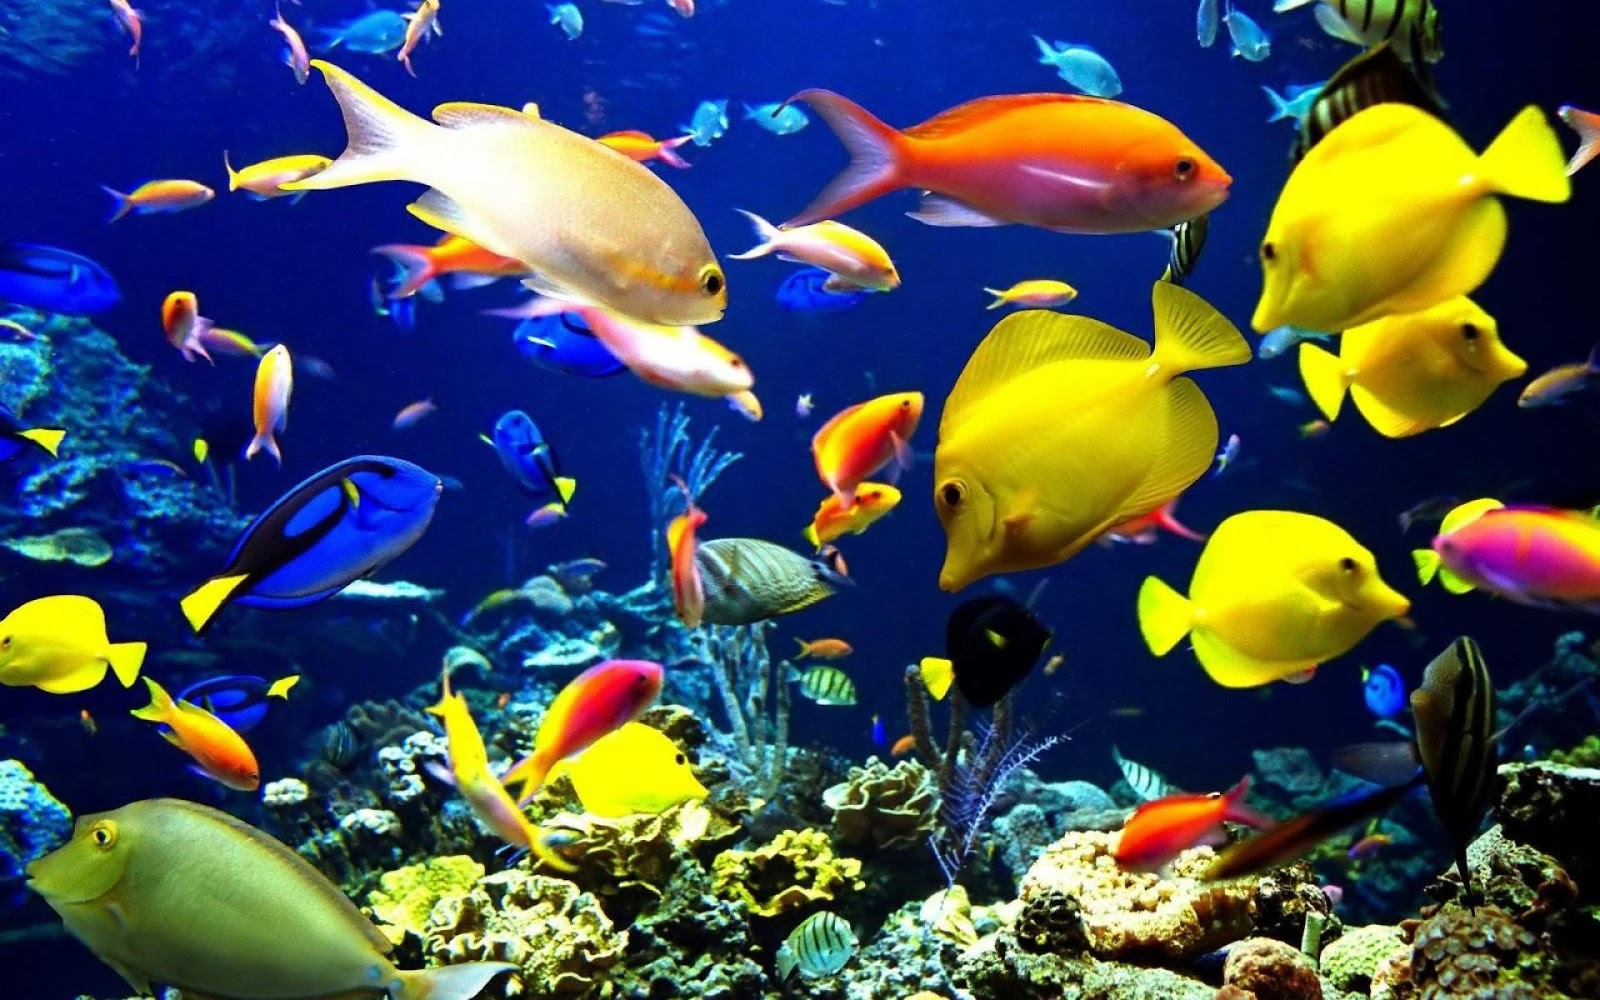 20 aquarium hd wallpapers pictures and freshwater aquarium for 3d fish wallpaper